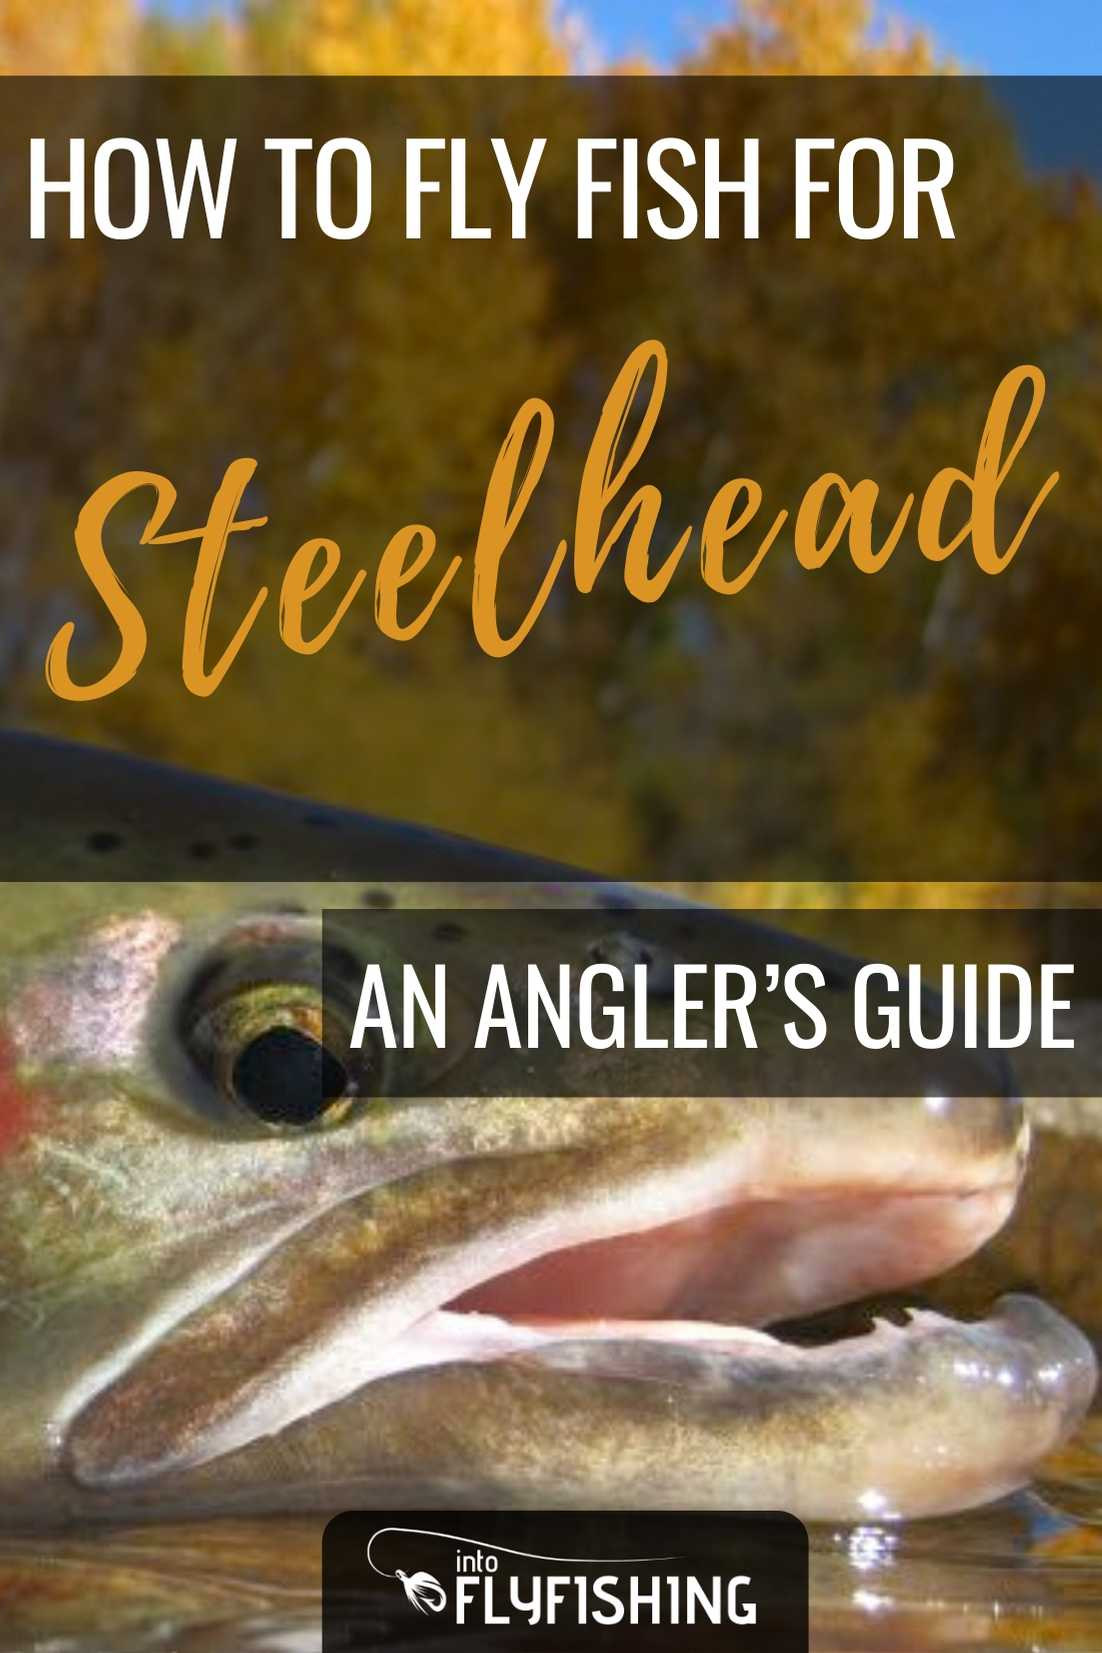 Angler's Guide On How To Fly Fish For Steelhead